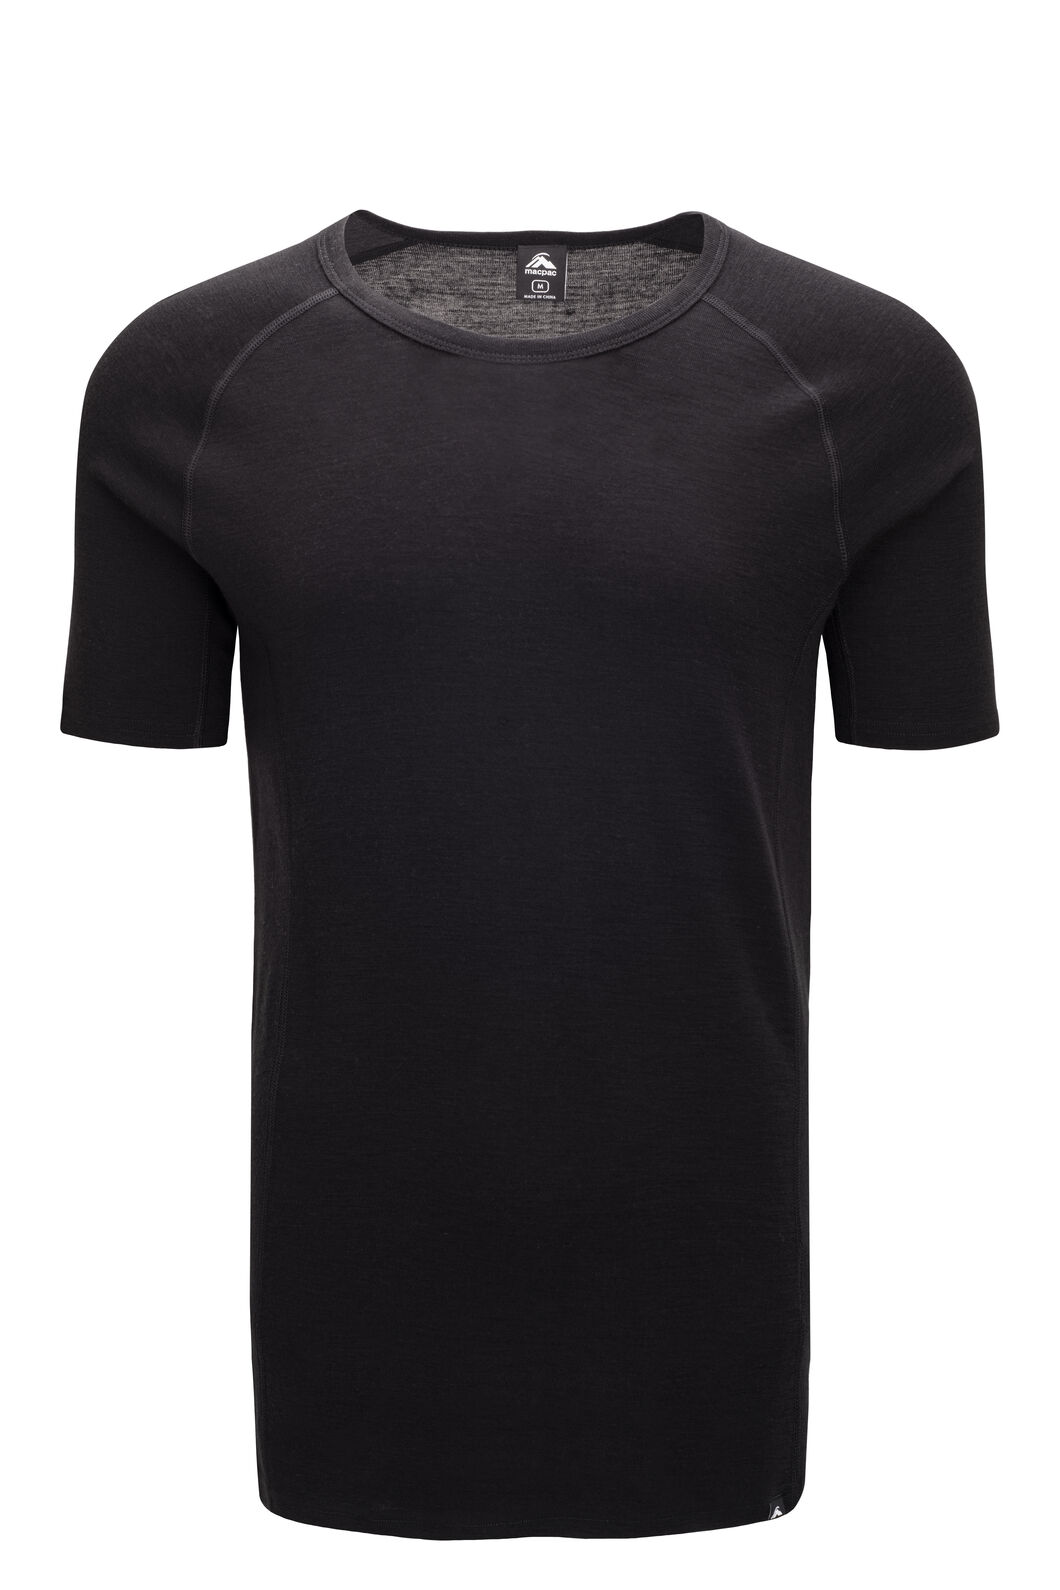 Macpac 220 Merino Short Sleeve Top — Men's, Black, hi-res